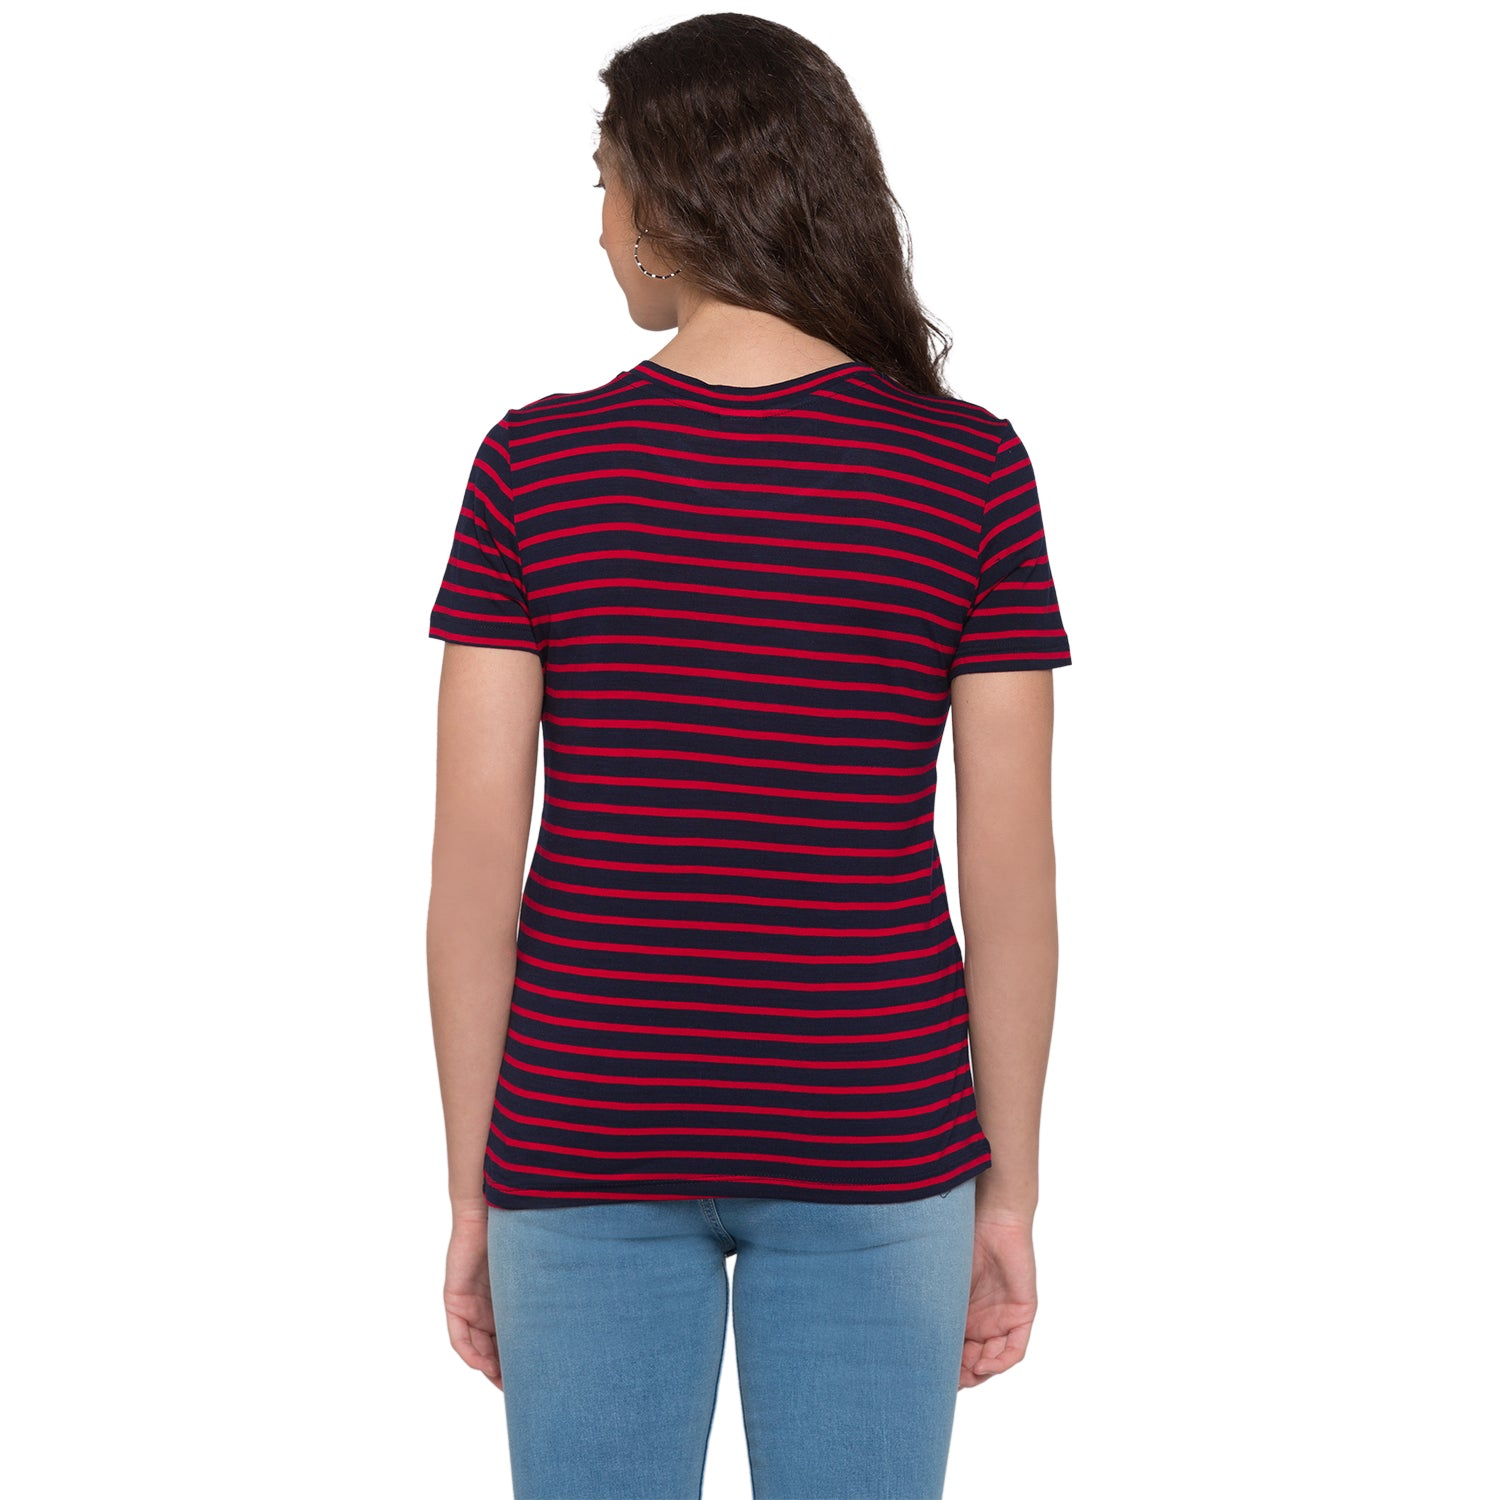 Globus Red & Navy Blue Striped Top3